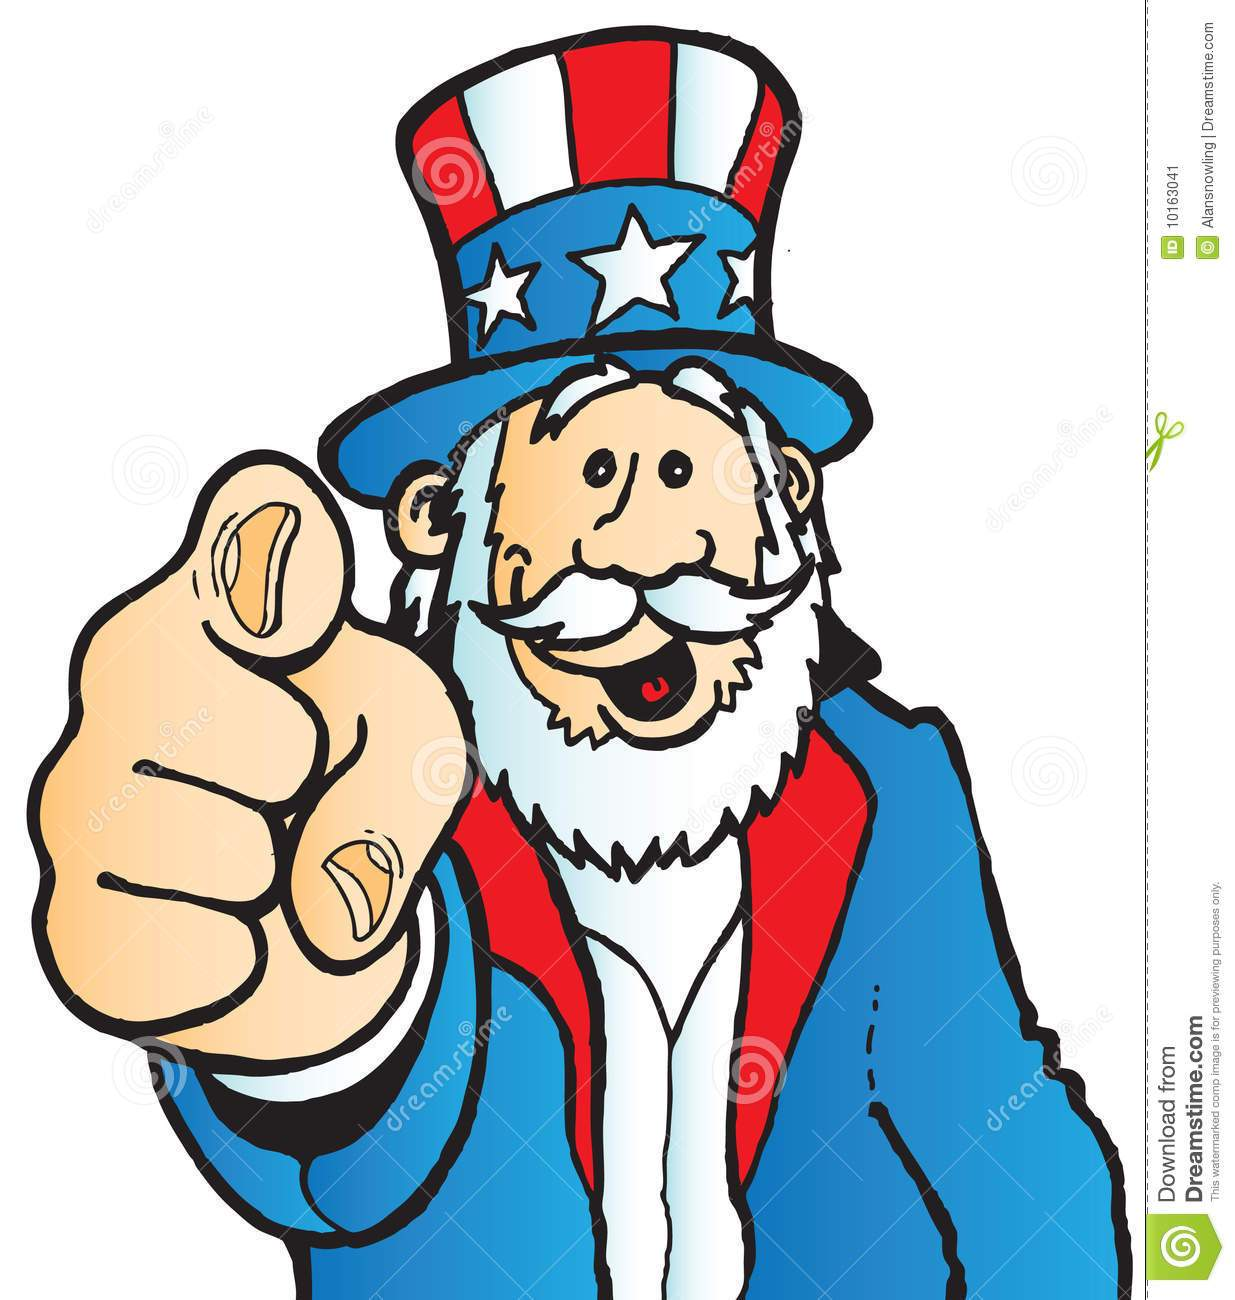 Uncle sam pointing finger clipart 6 » Clipart Portal.